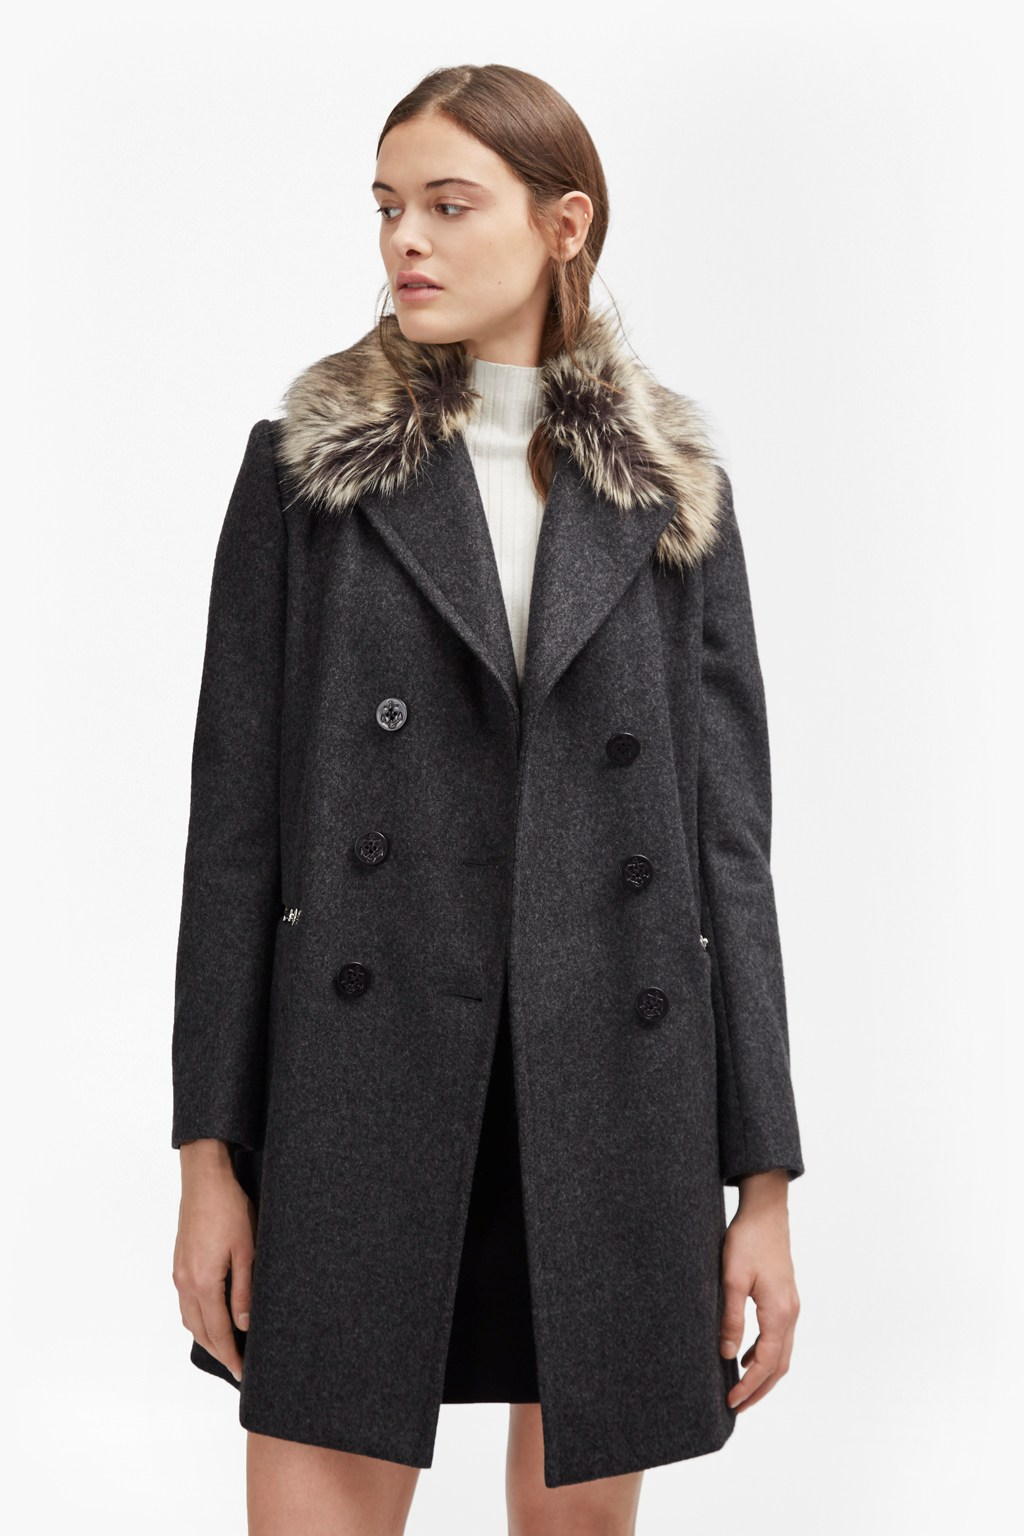 Find great deals on eBay for women fur collar coat. Shop with confidence.